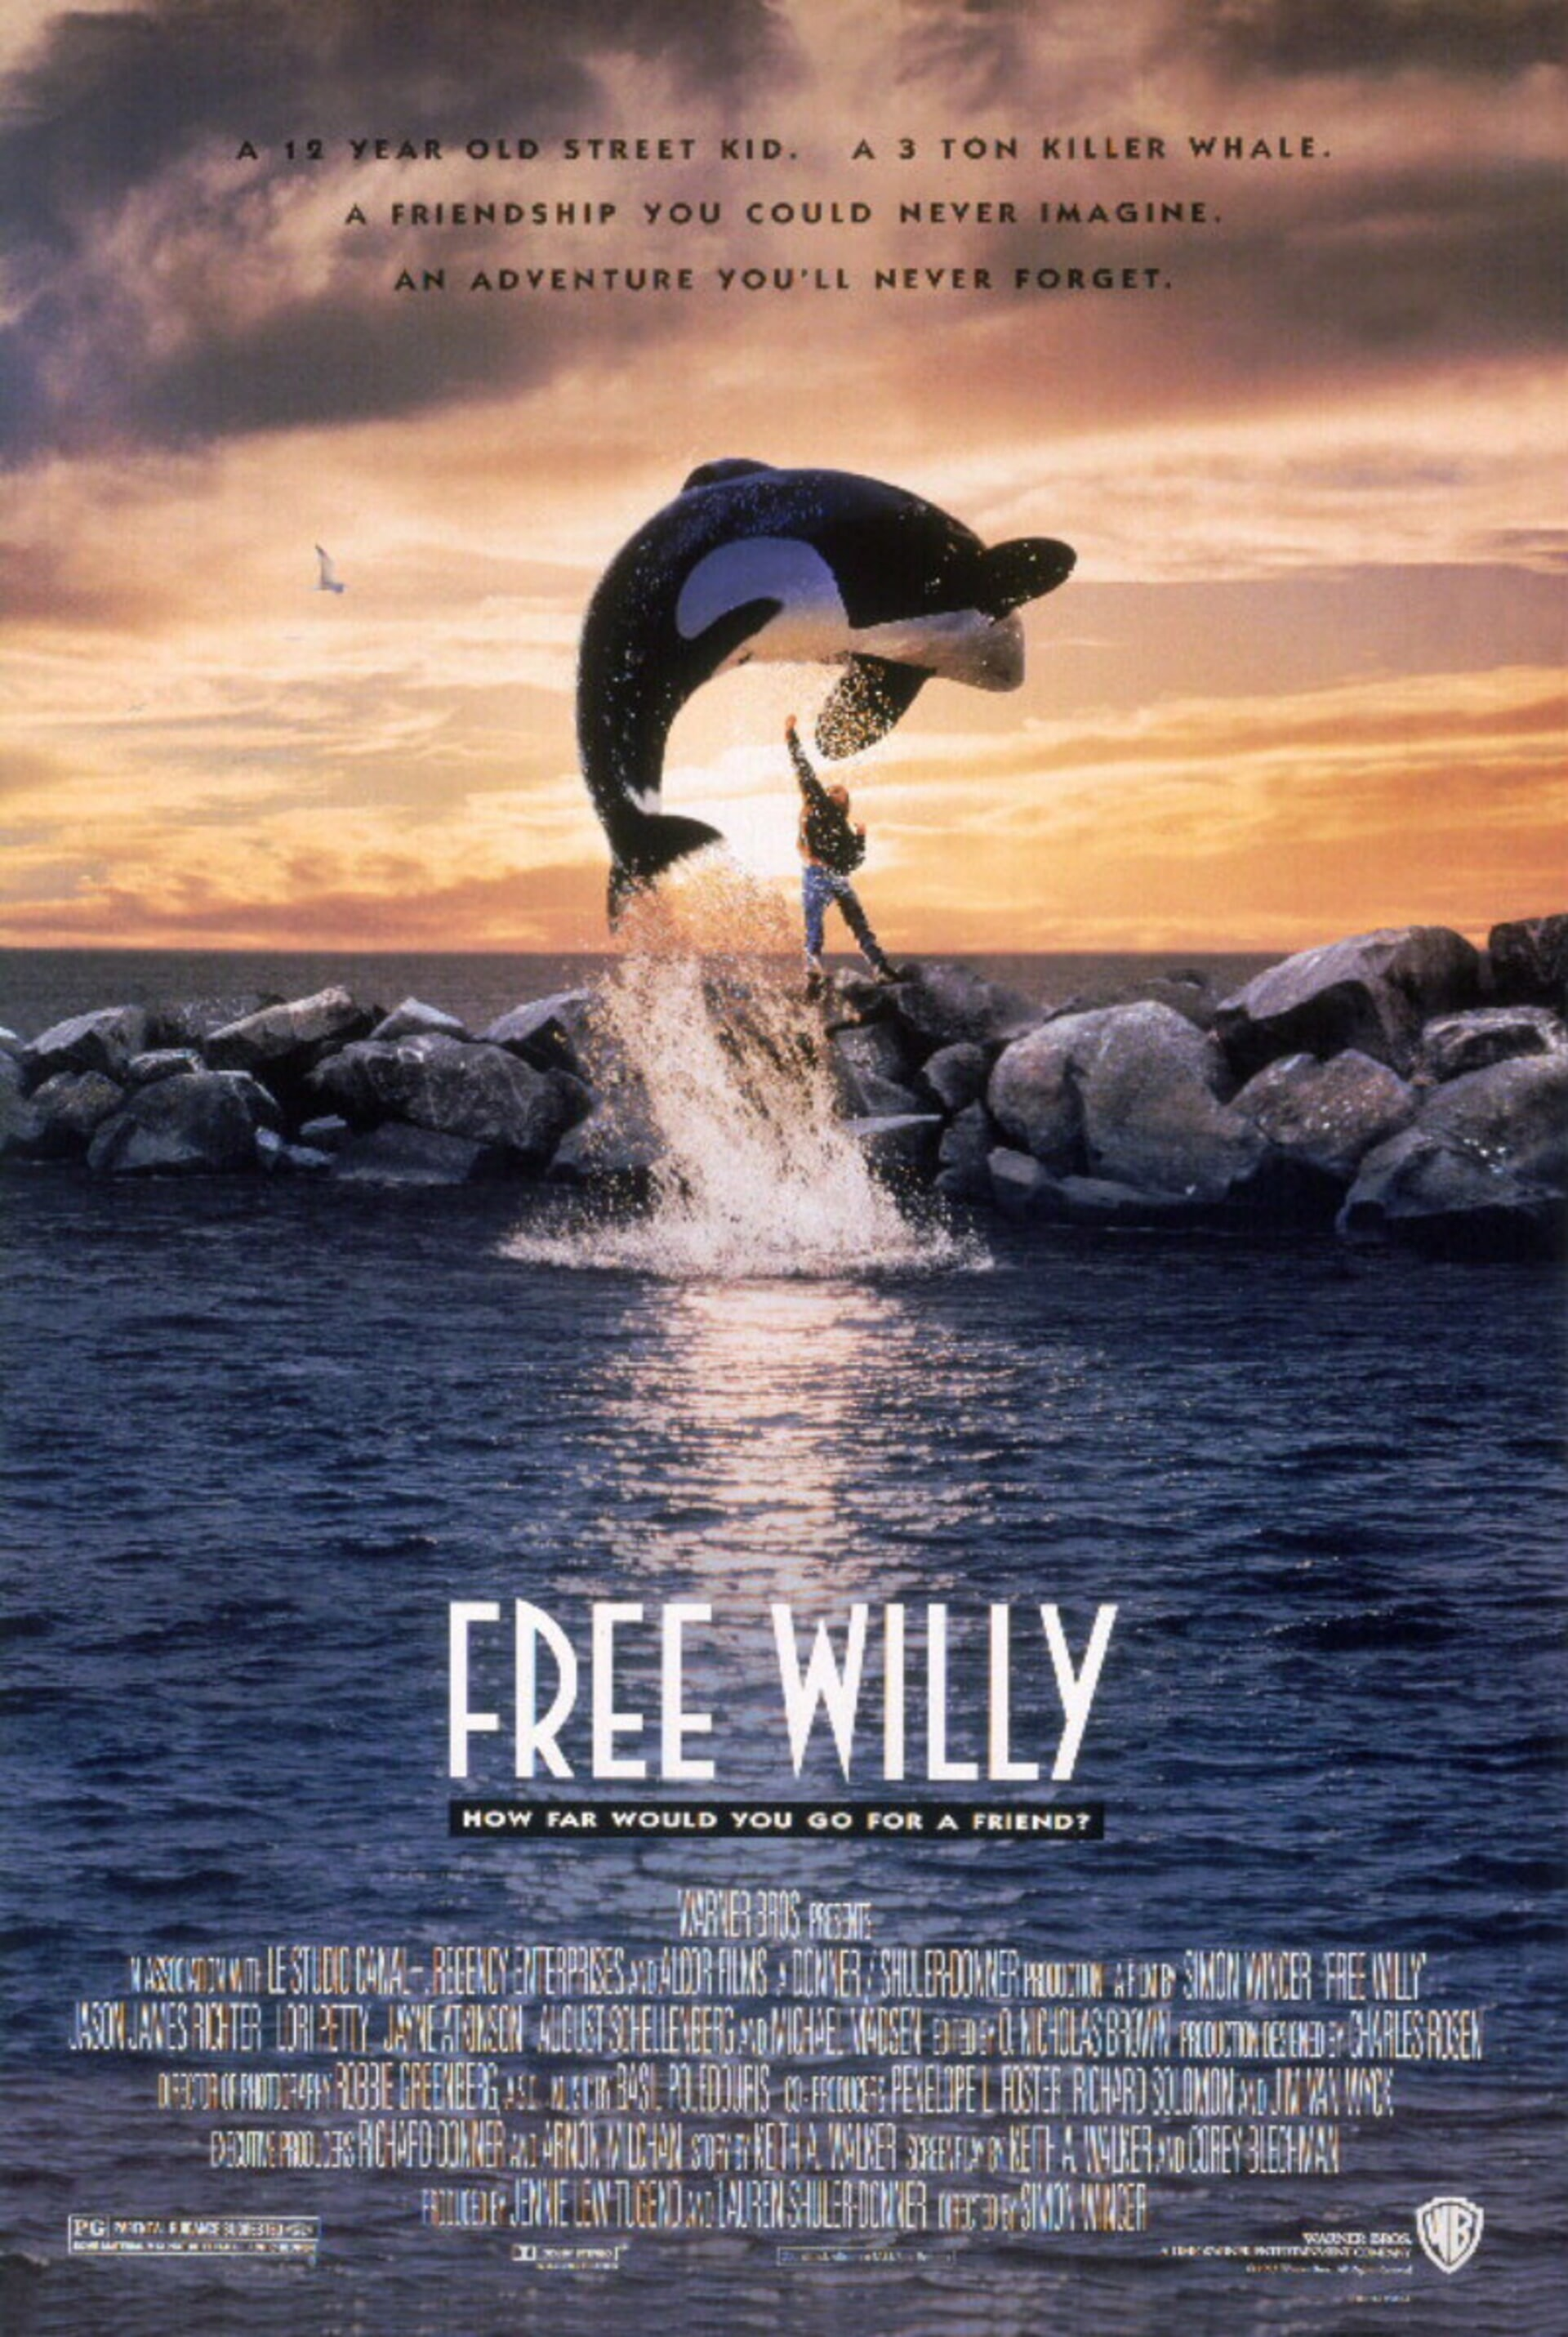 Free Willy - Poster 1